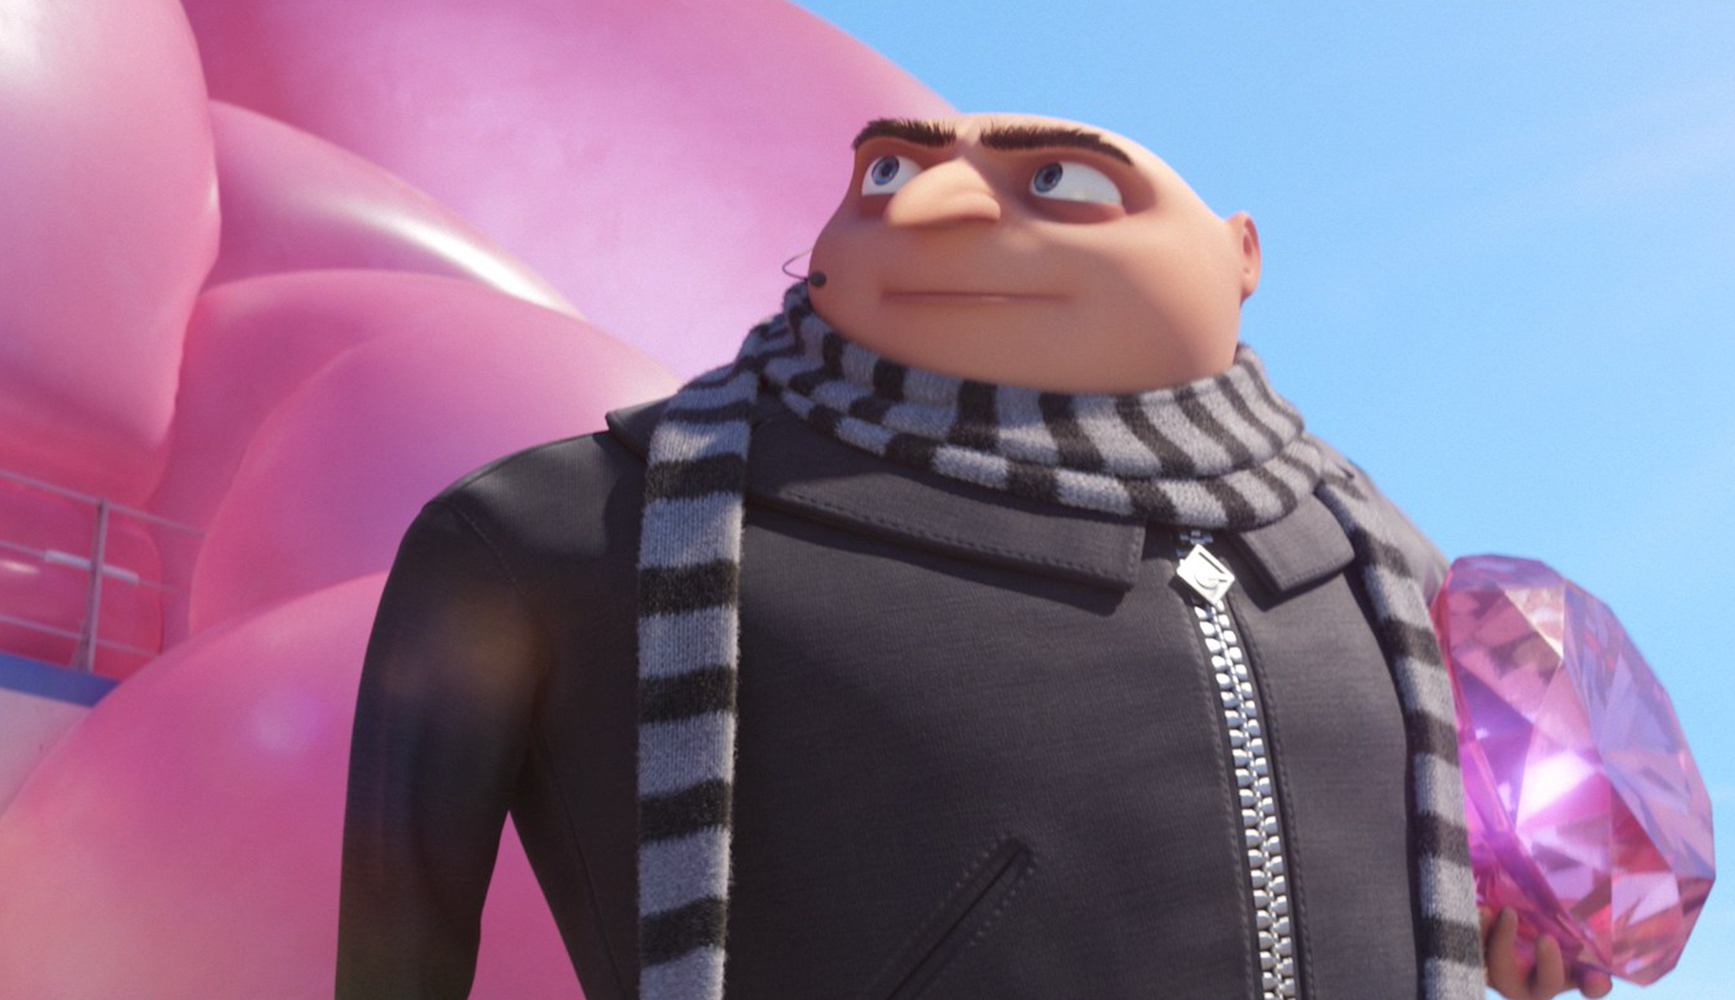 Meet Gru's Twin Brother in New Trailer for Despicable Me 3